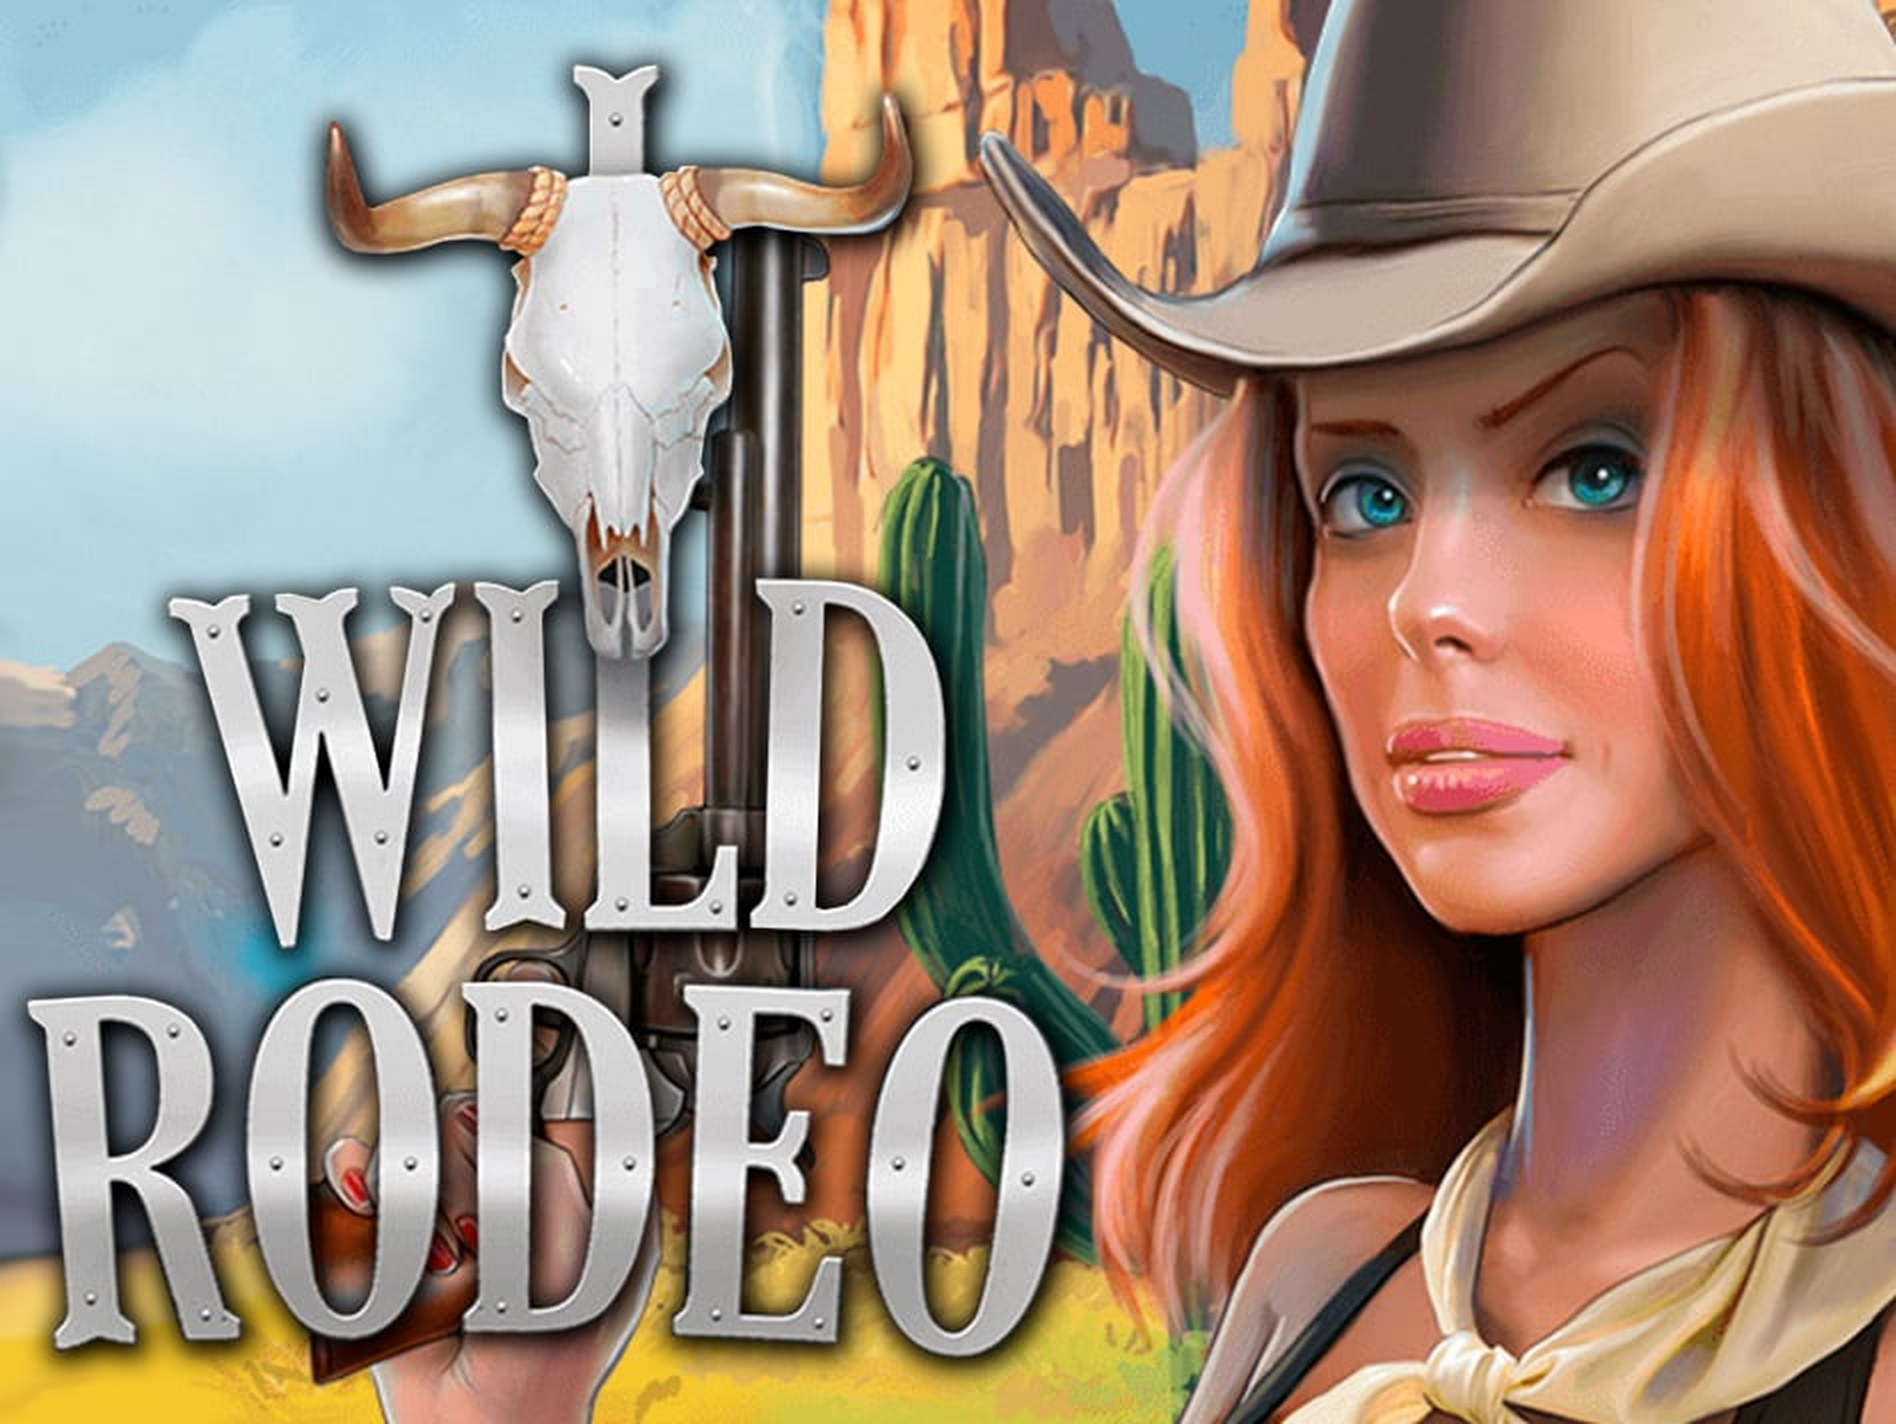 The Wild Rodeo (Fugaso) Online Slot Demo Game by Fugaso